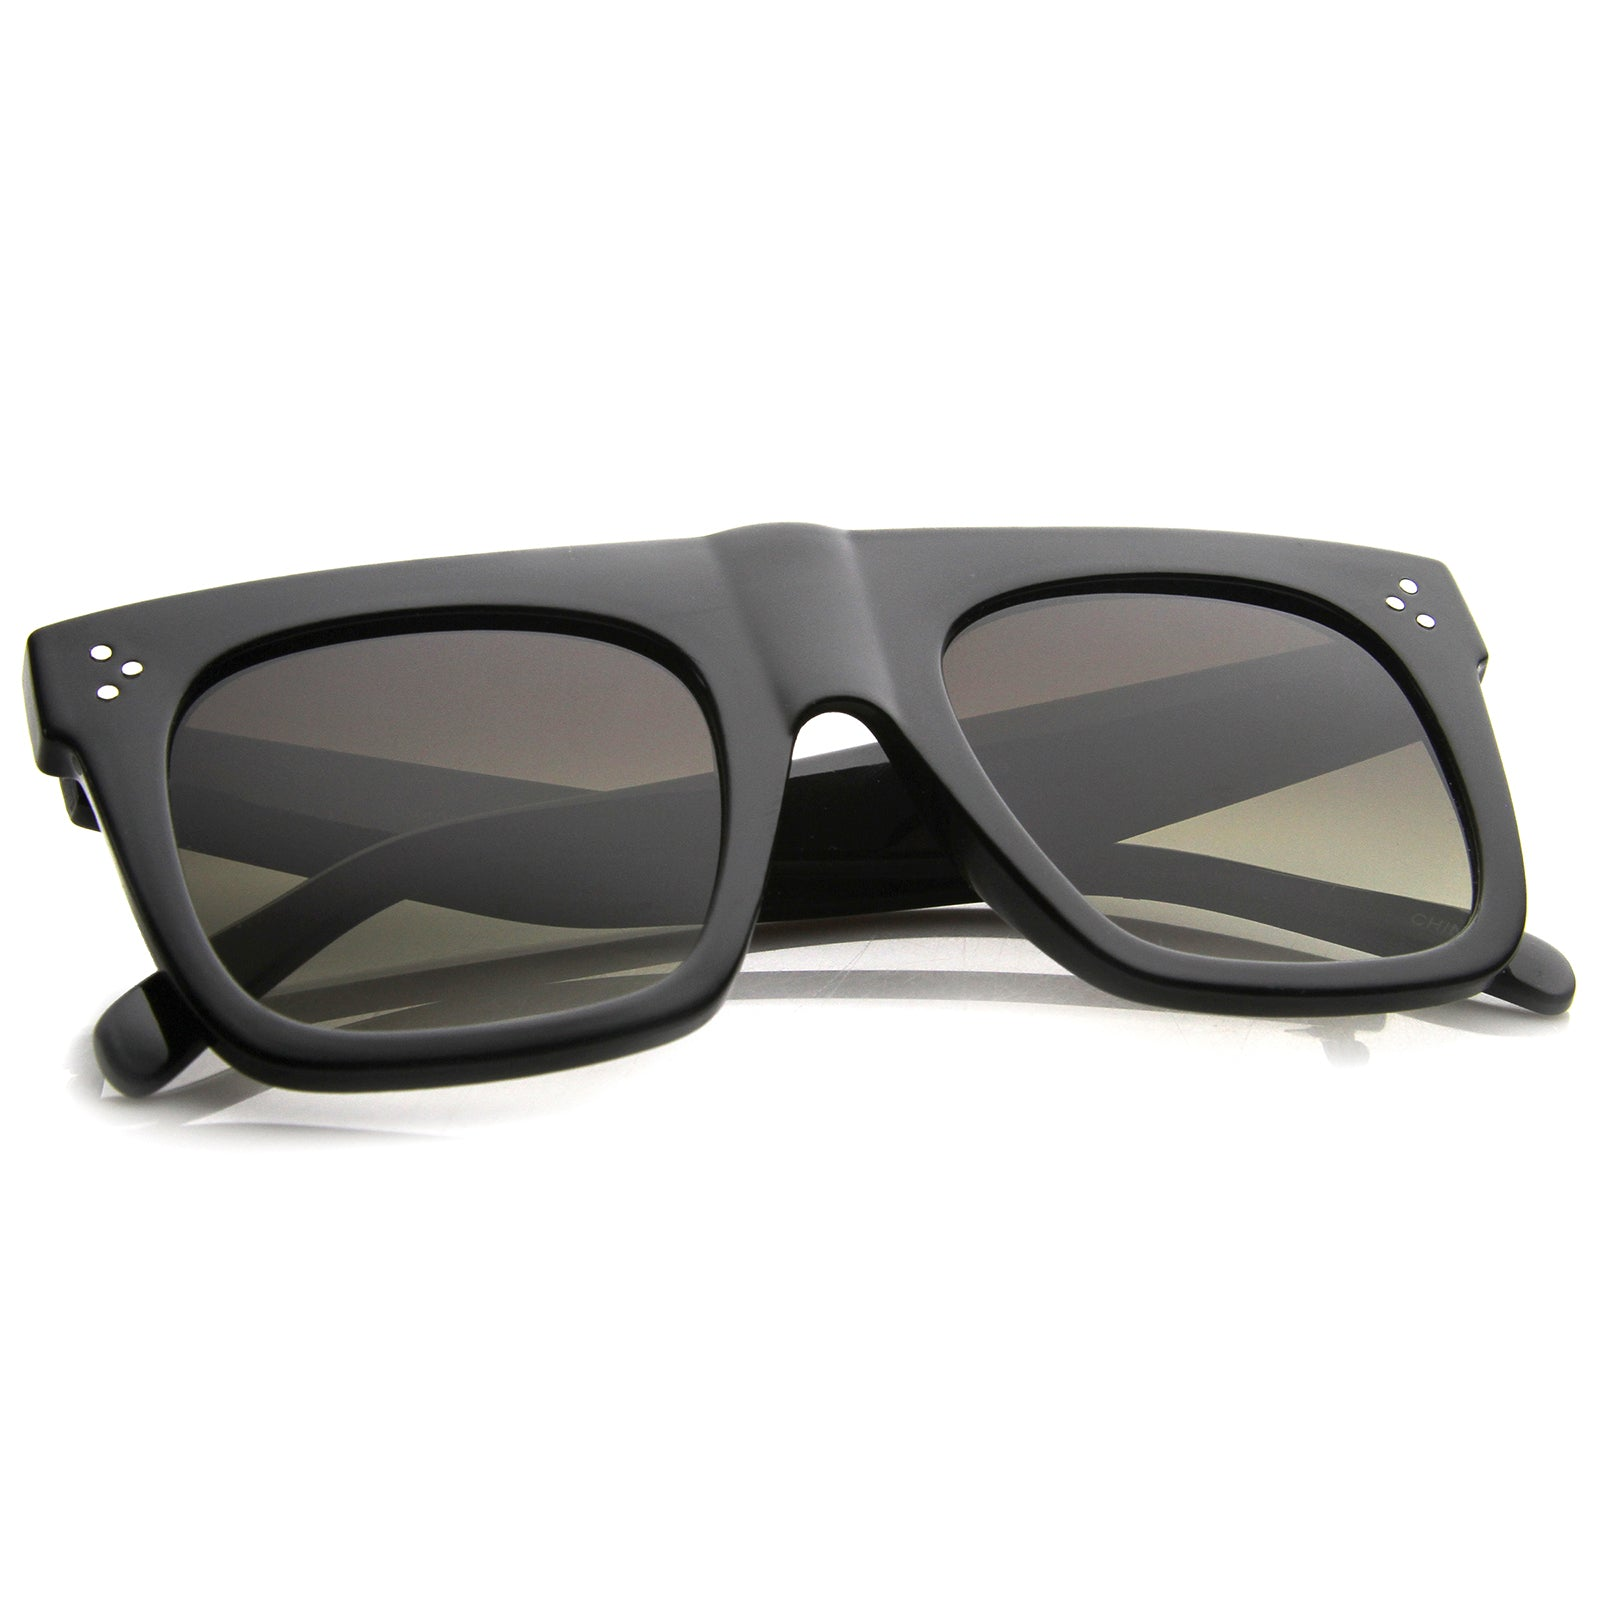 Modern Fashion Bold Flat Top Square Horn Rimmed Sunglasses 50mm - sunglass.la - 12